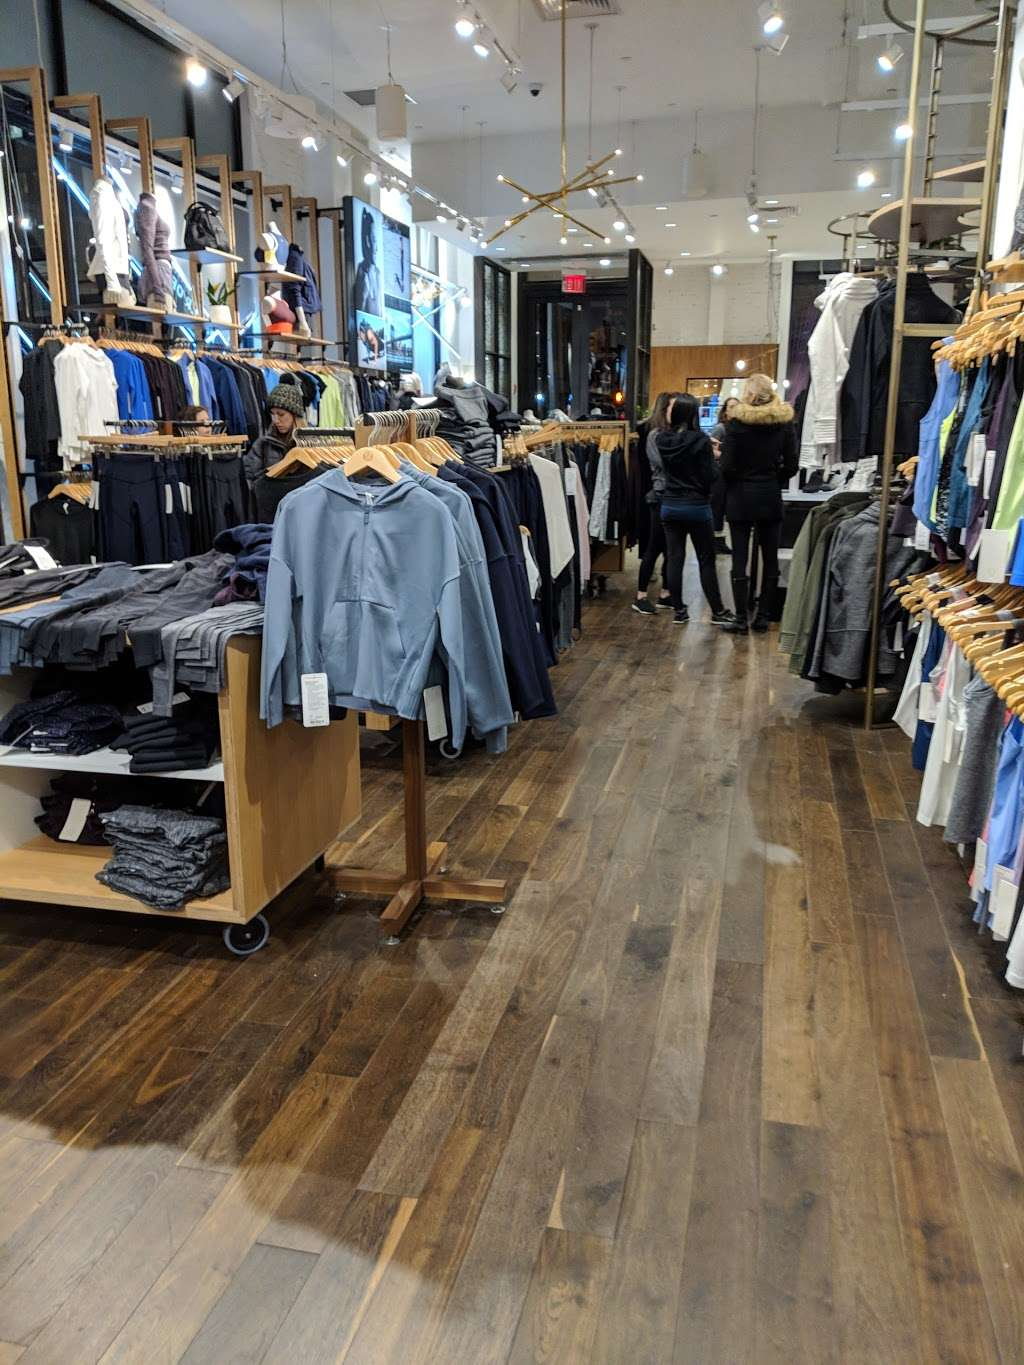 lululemon - shoe store  | Photo 2 of 10 | Address: 114 5th Ave, New York, NY 10011, USA | Phone: (212) 627-0314